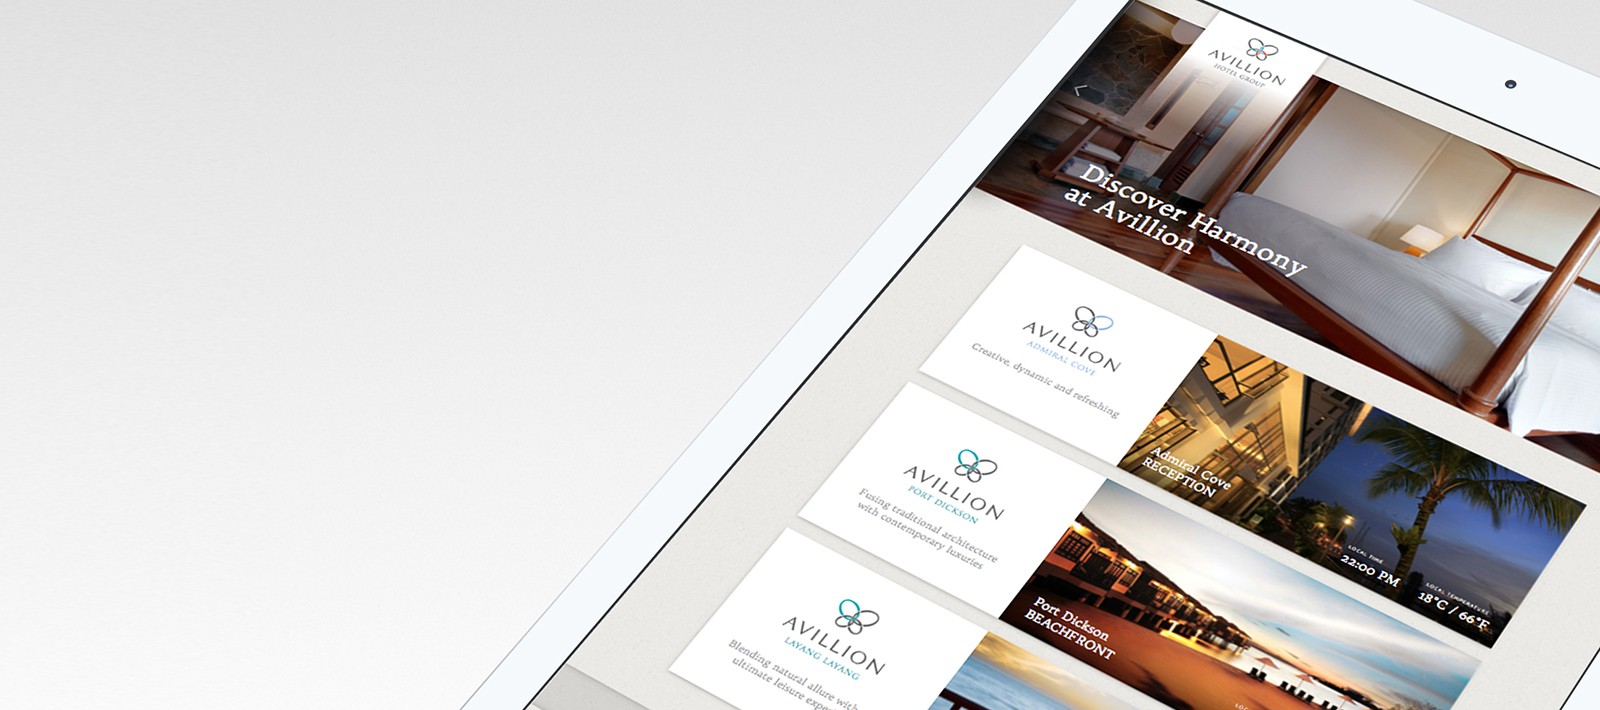 Digital and social media marketing for a hotel